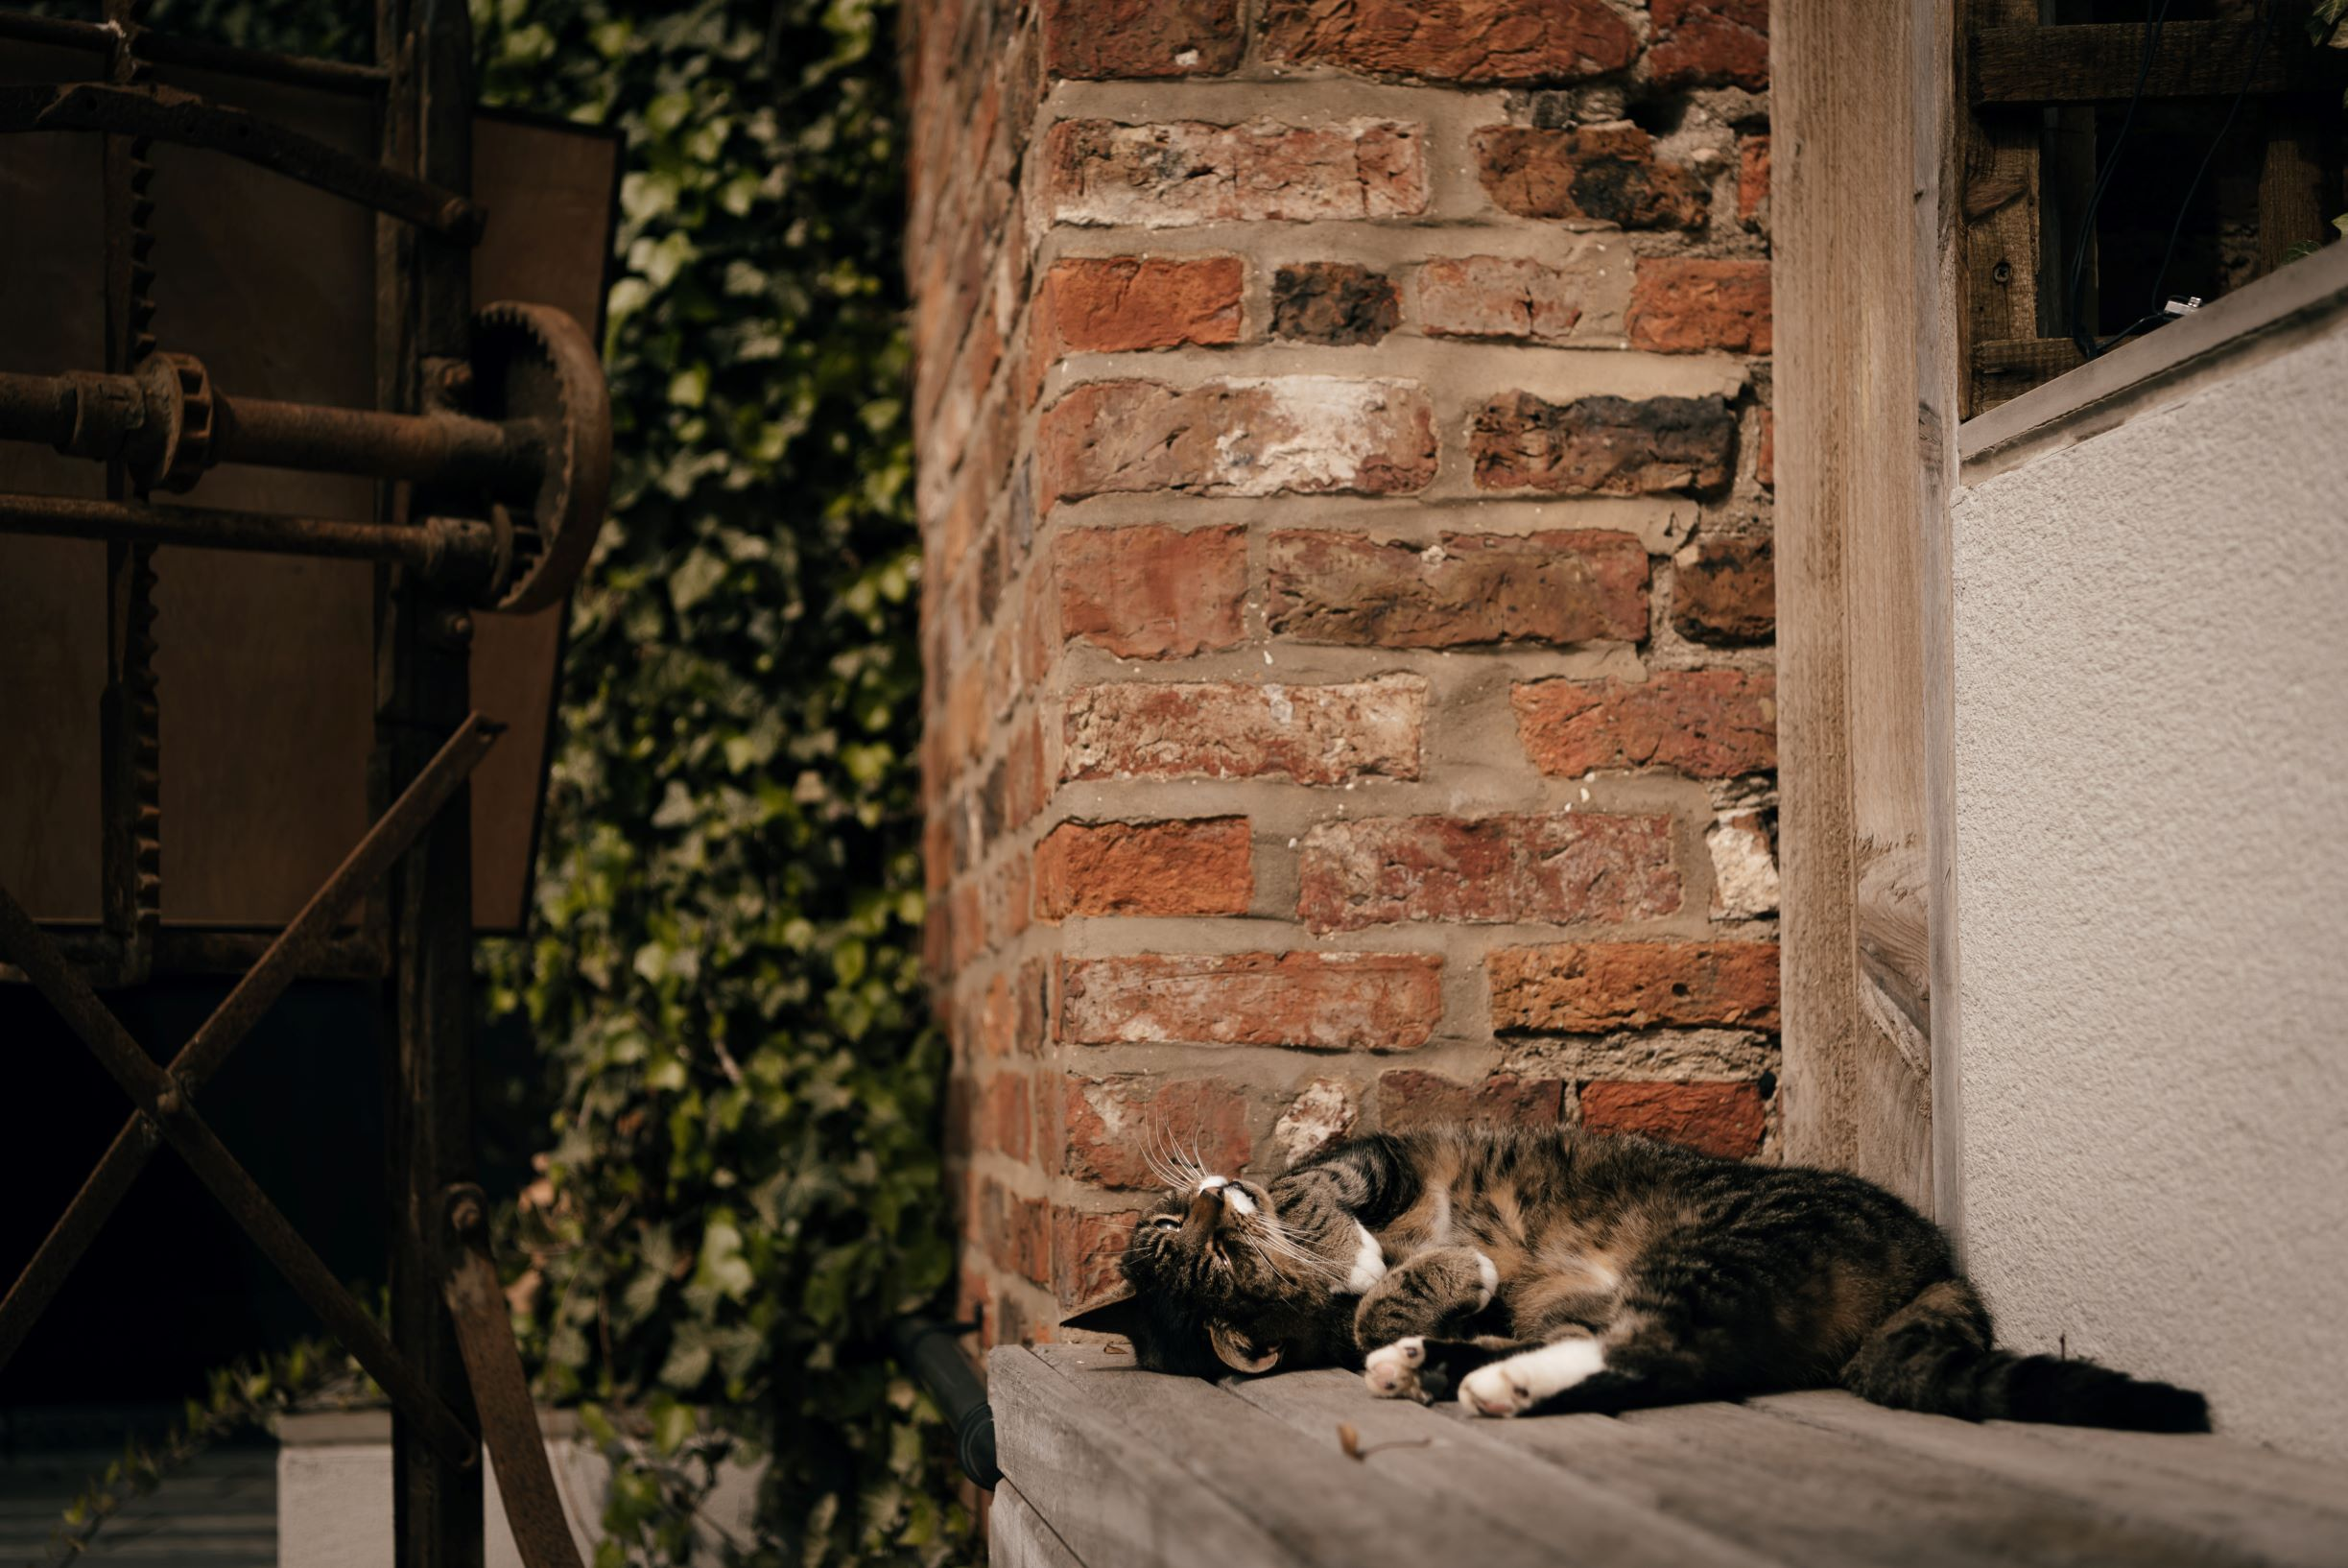 'Toilet Cat' - The Normans' resident feline - relaxes in the sun in The Courtyard. Photo by www.julesbarron.com